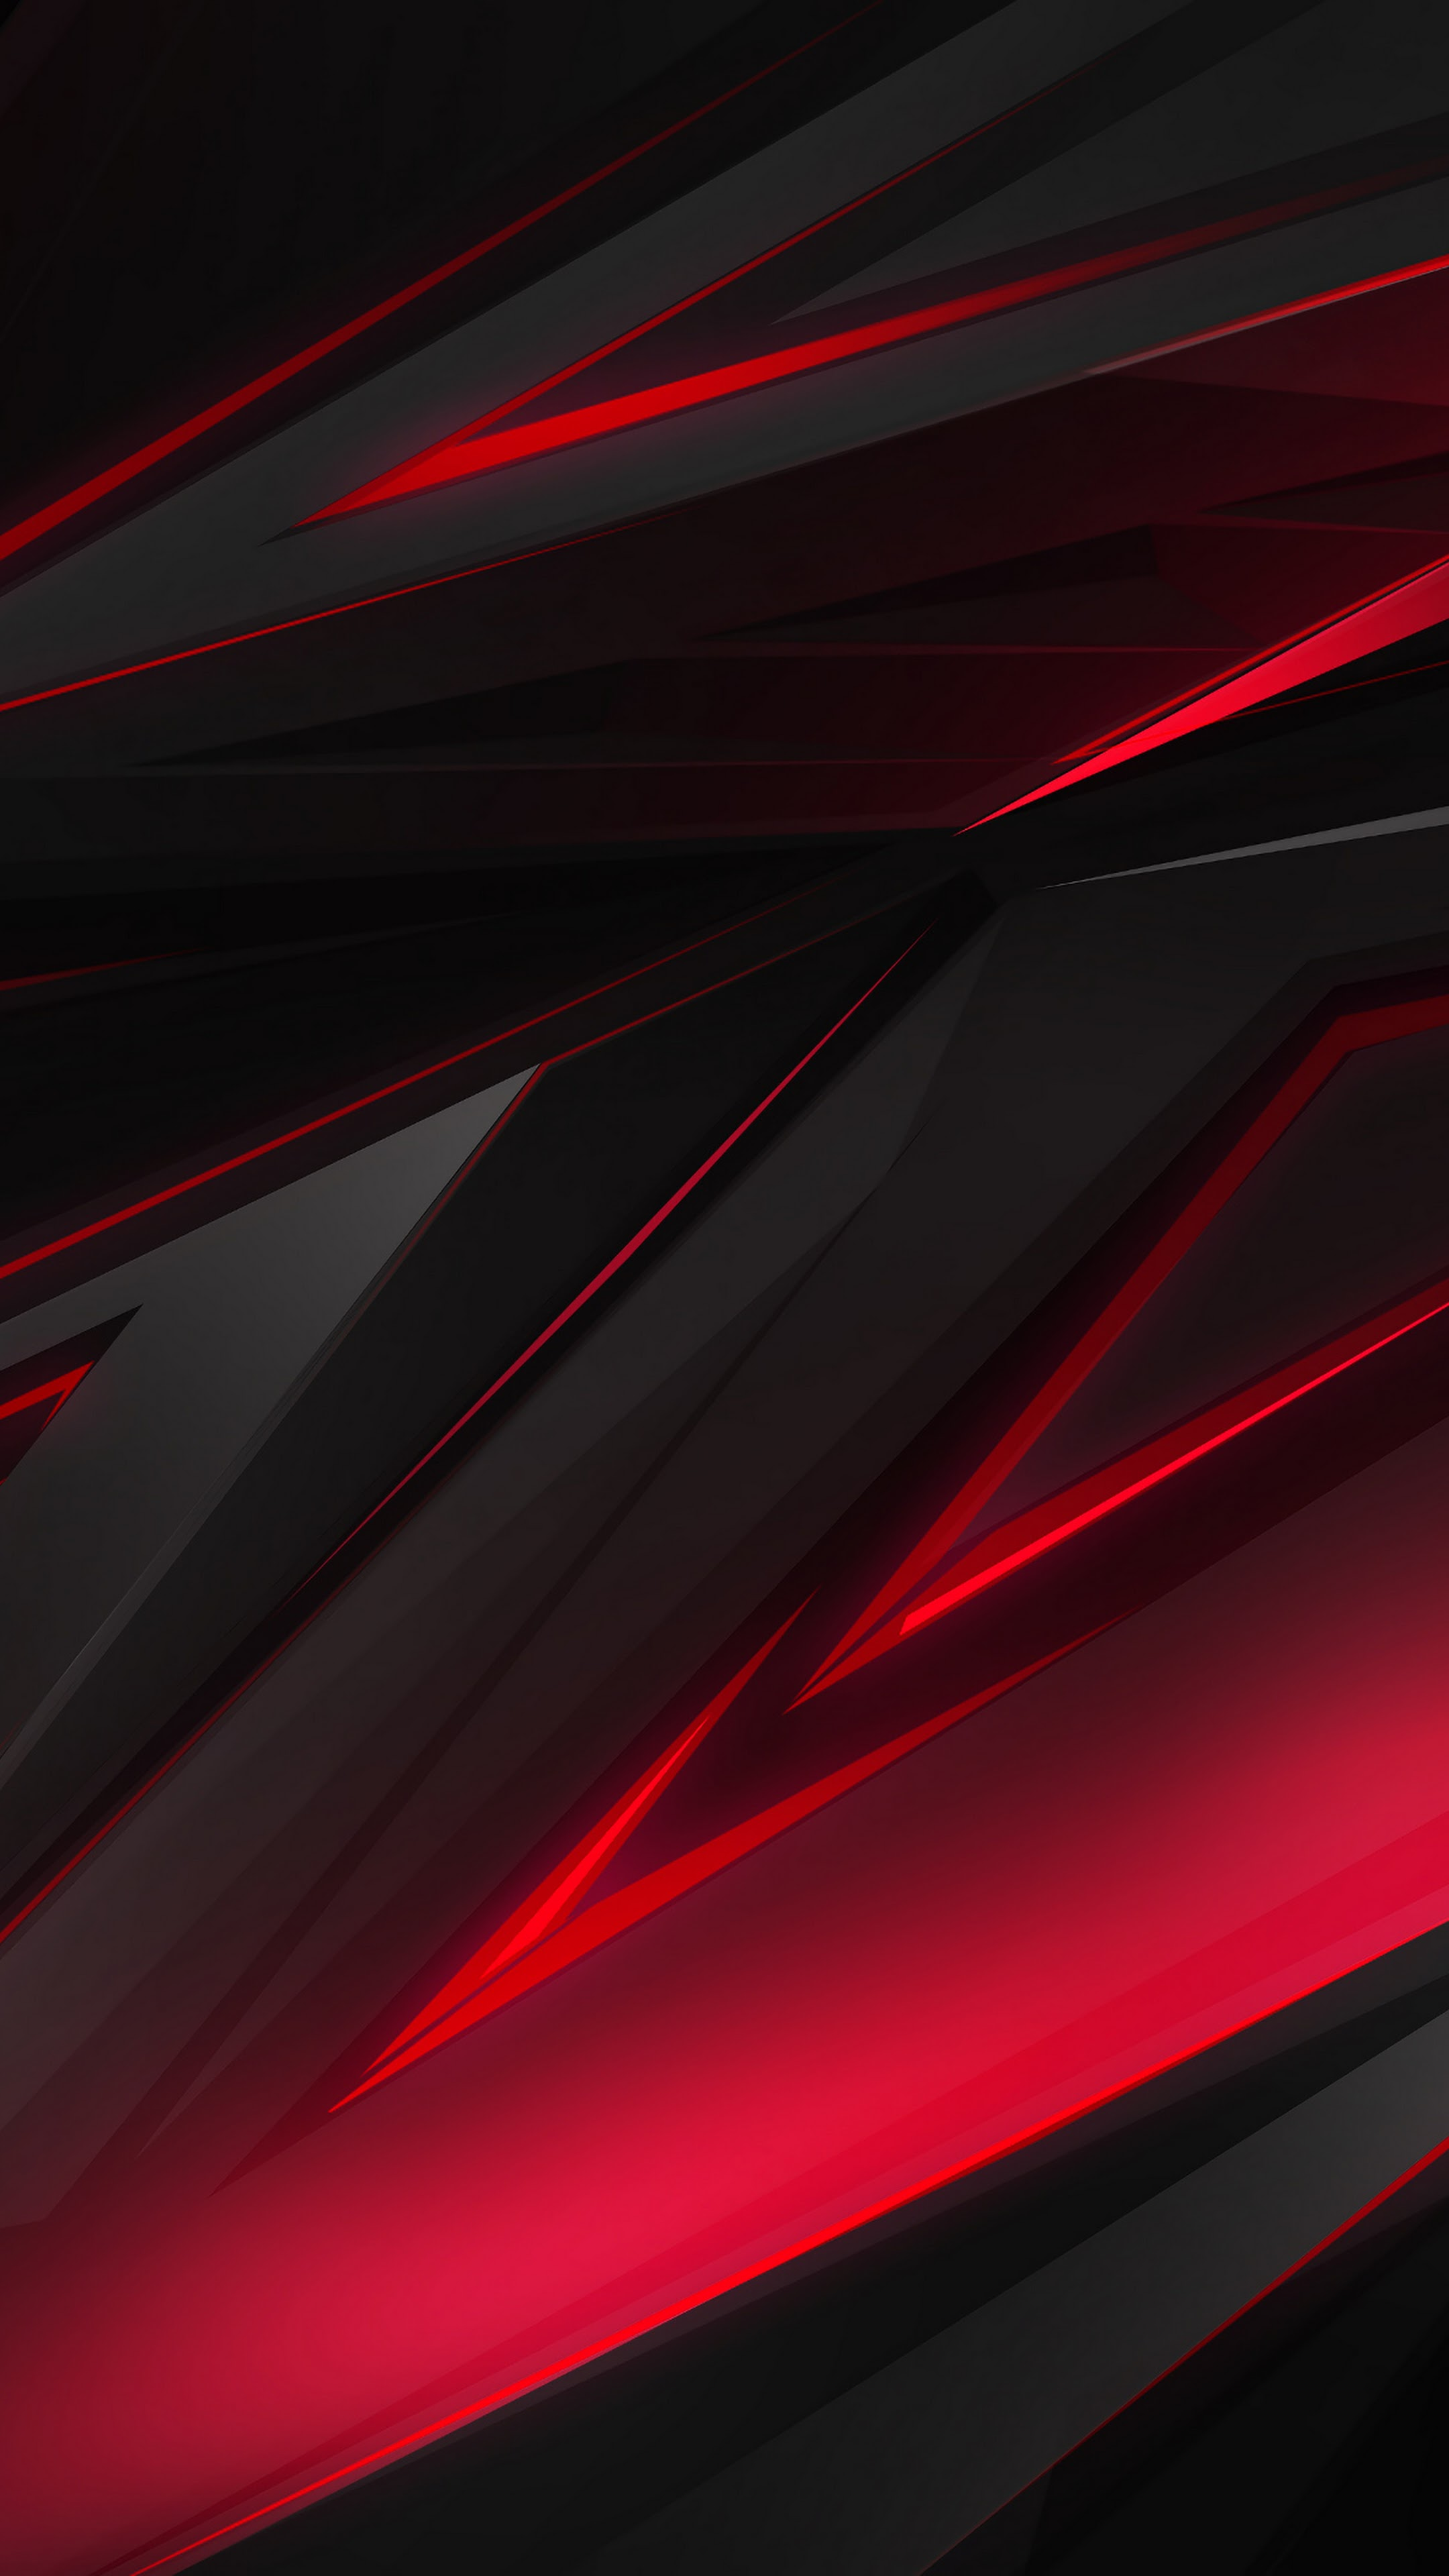 Android Black And Red Wallpaper Kolpaper Awesome Free Hd Wallpapers